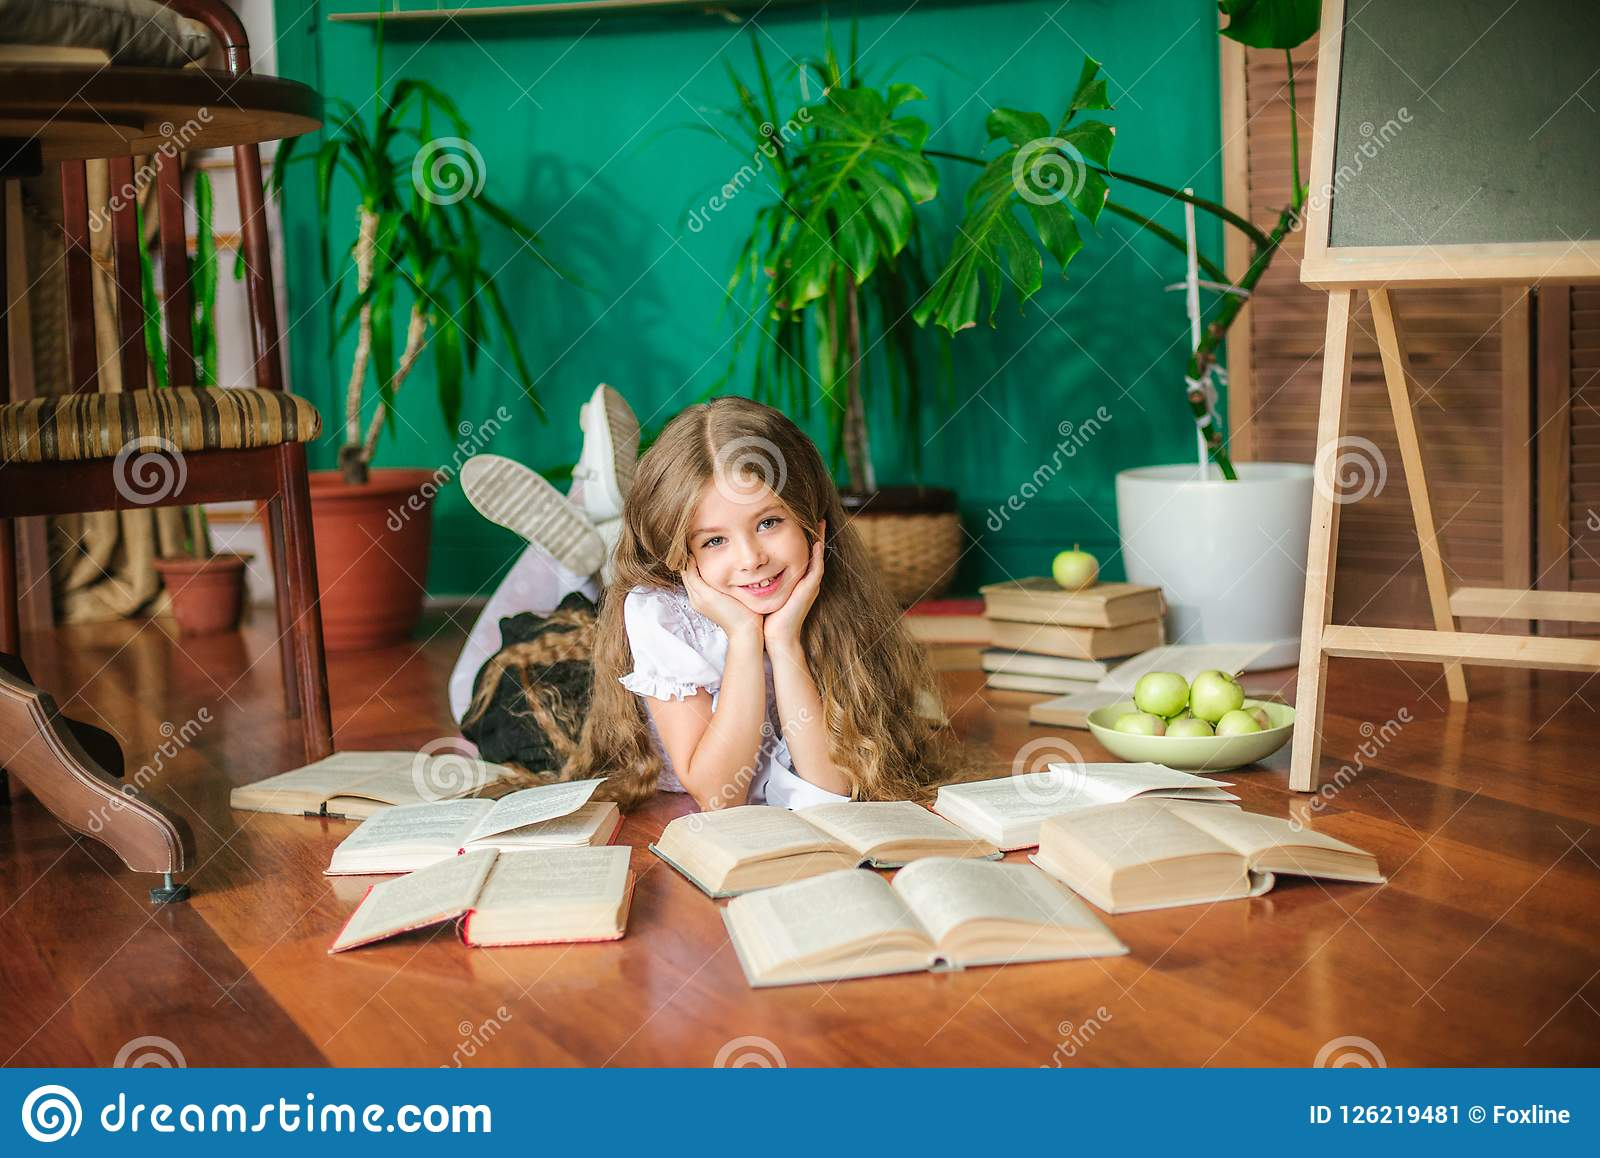 A sweet schoolgirl of junior classes with long blond hair with books, a school board and apples